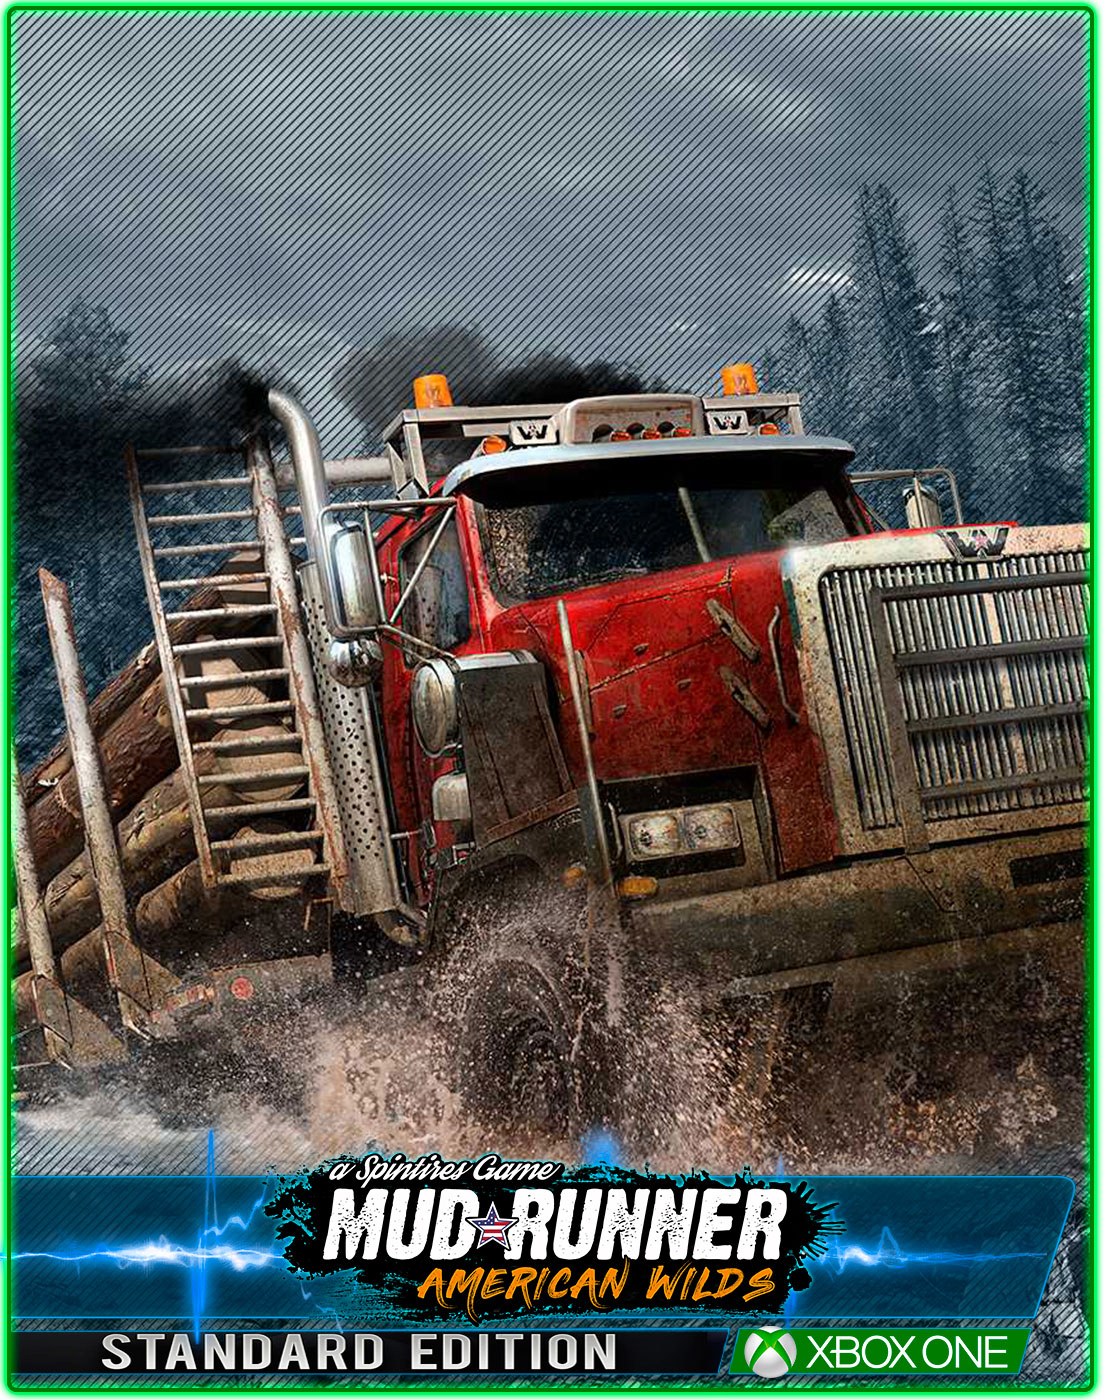 MudRunner American Wilds Edition(XBOX ONE) 2019